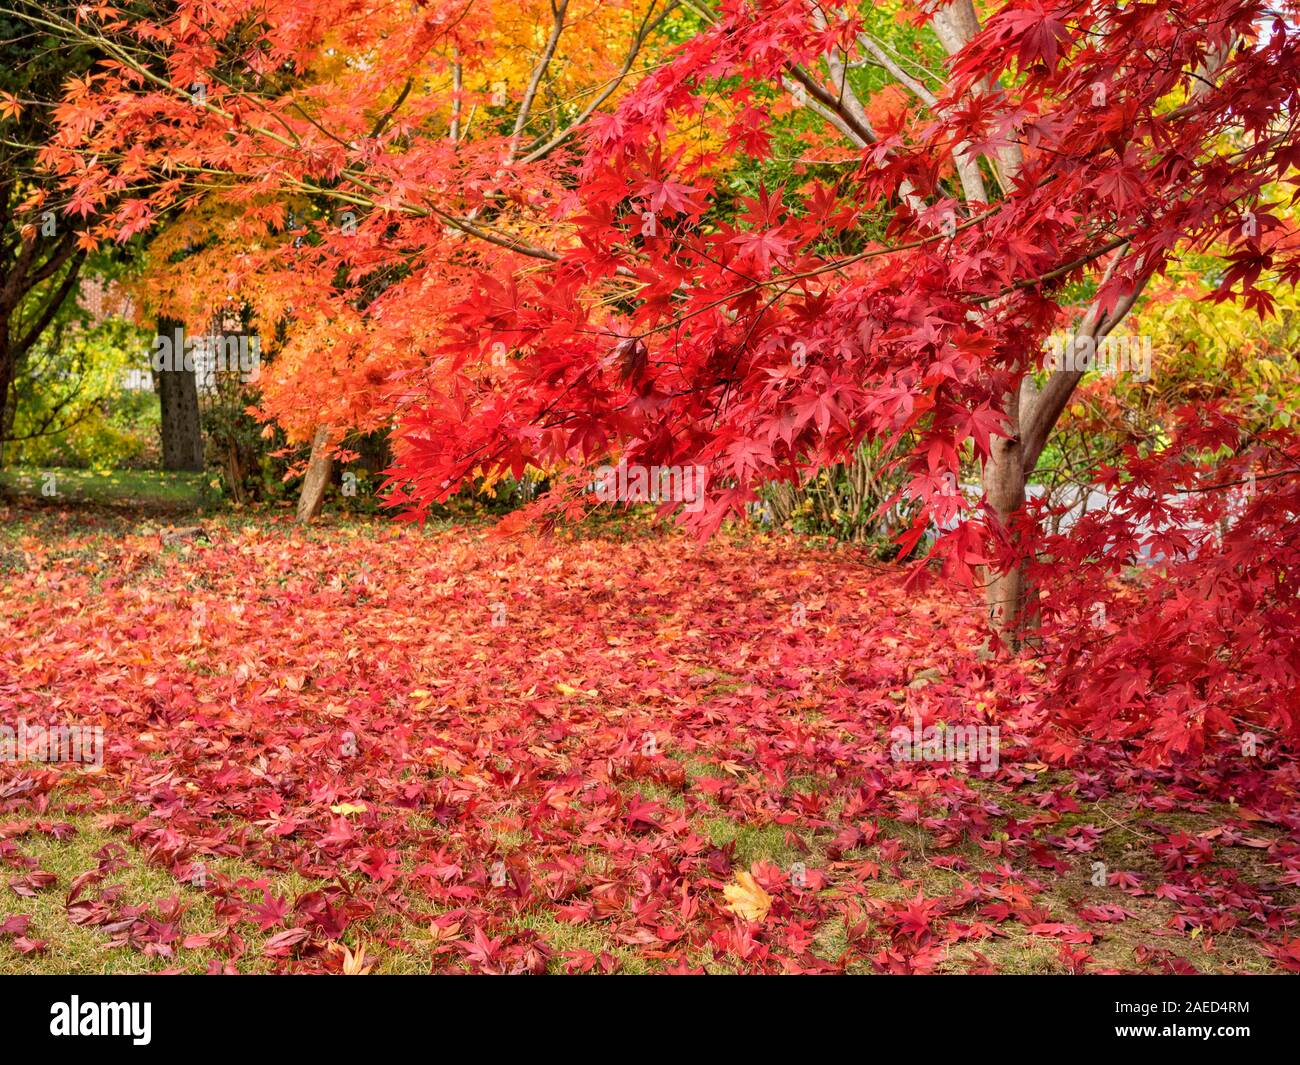 colorful-bright-gold-yellow-orange-and-red-japanese-maple-leaves-on-trees-acer-palmatum-and-scattered-on-the-grass-on-an-autumn-day-chappaqua-west-2AED4RM.jpg